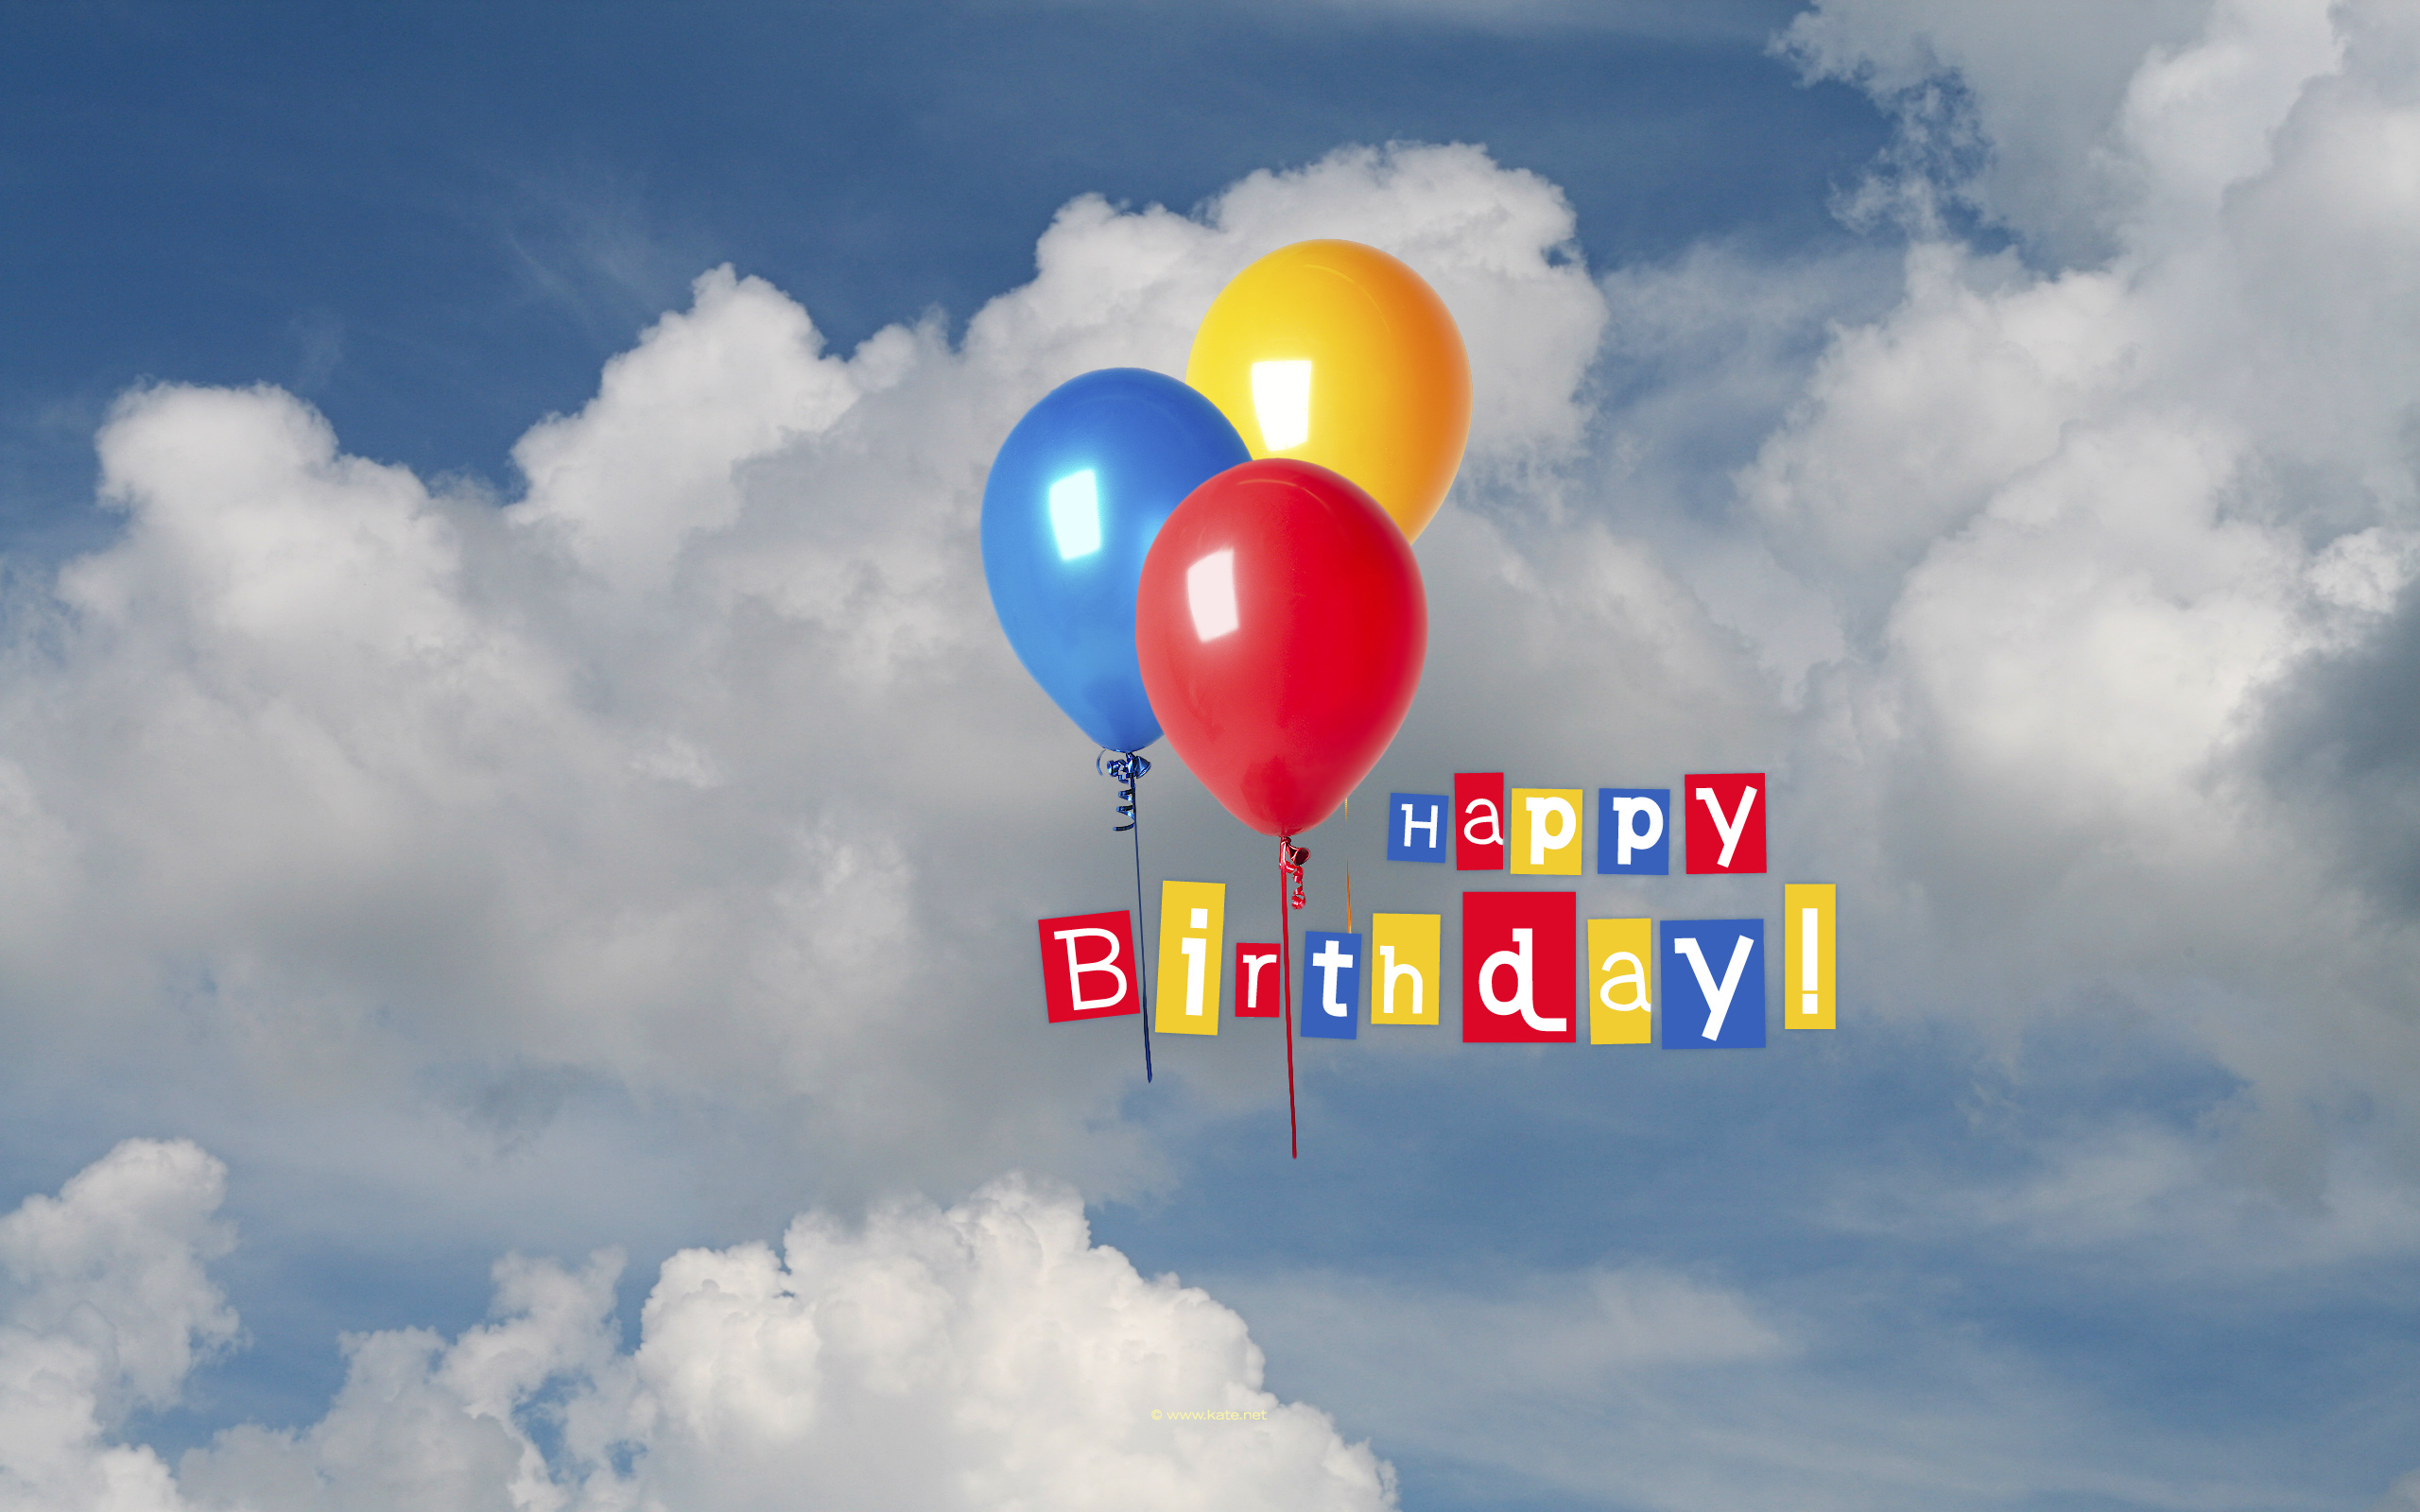 Birthday HD Wallpapers Birthday HD Wallpapers 2560x1600